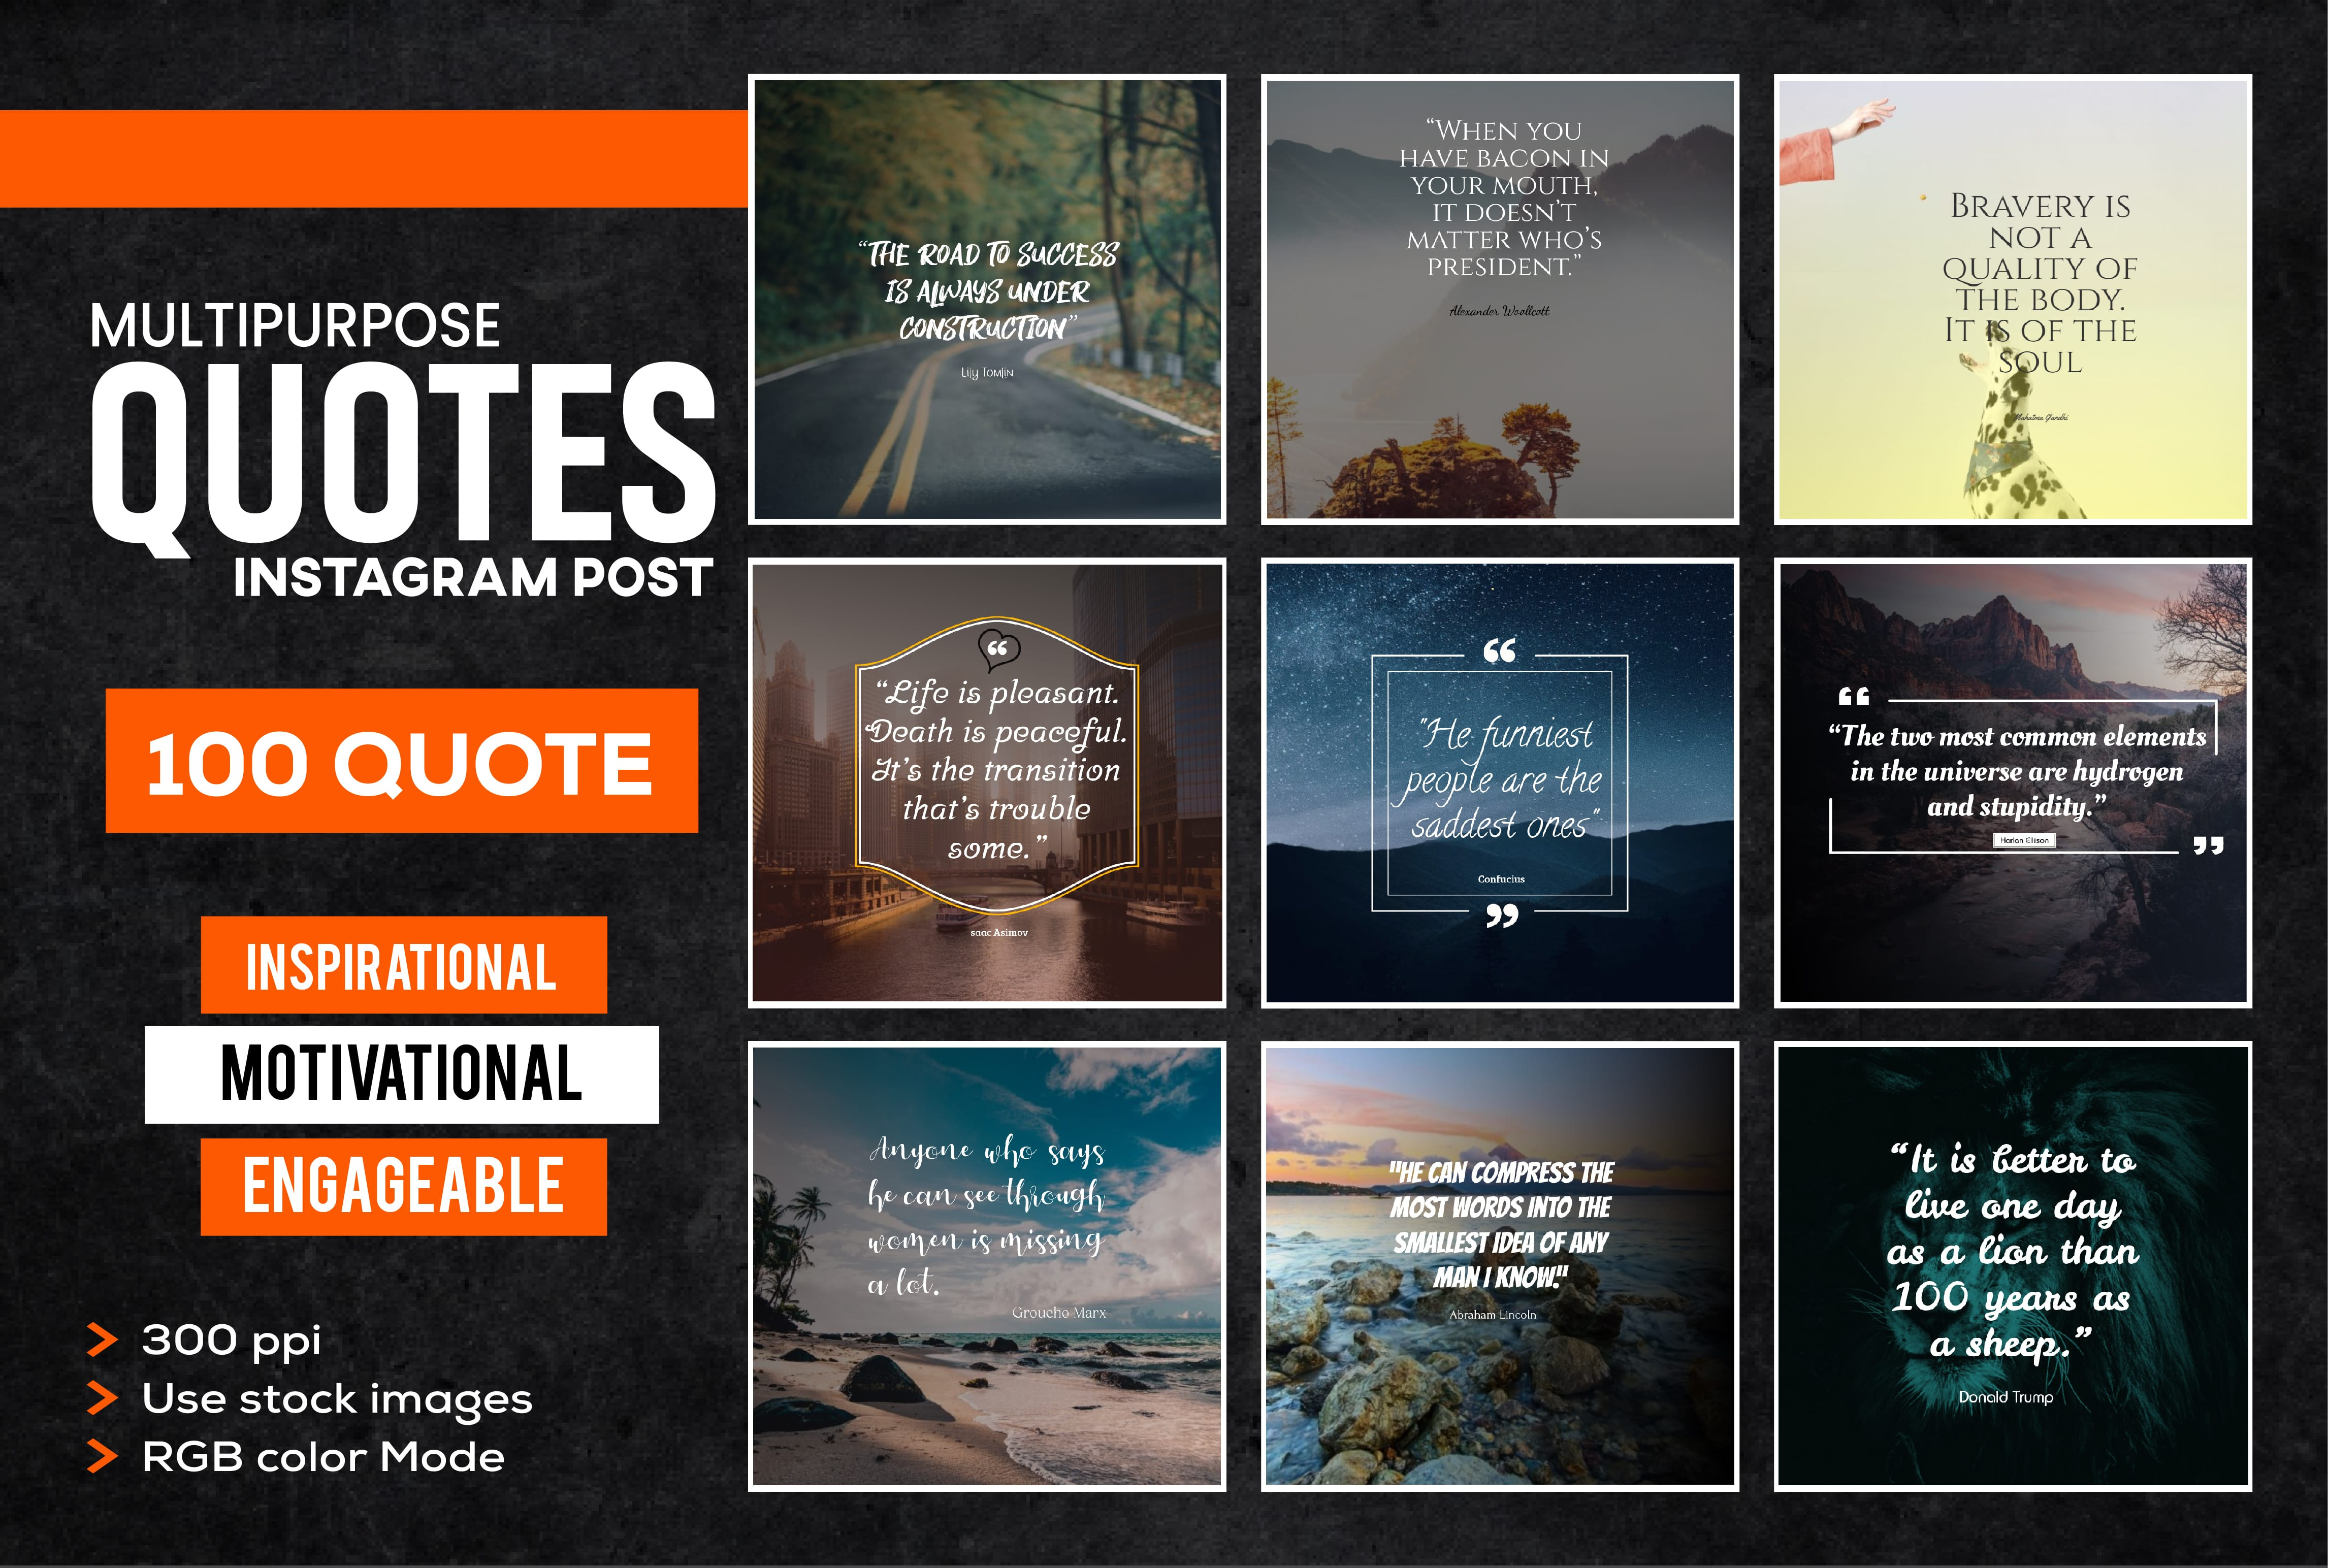 I will design 100 motivational quotes, inspirational quotes, image quotes